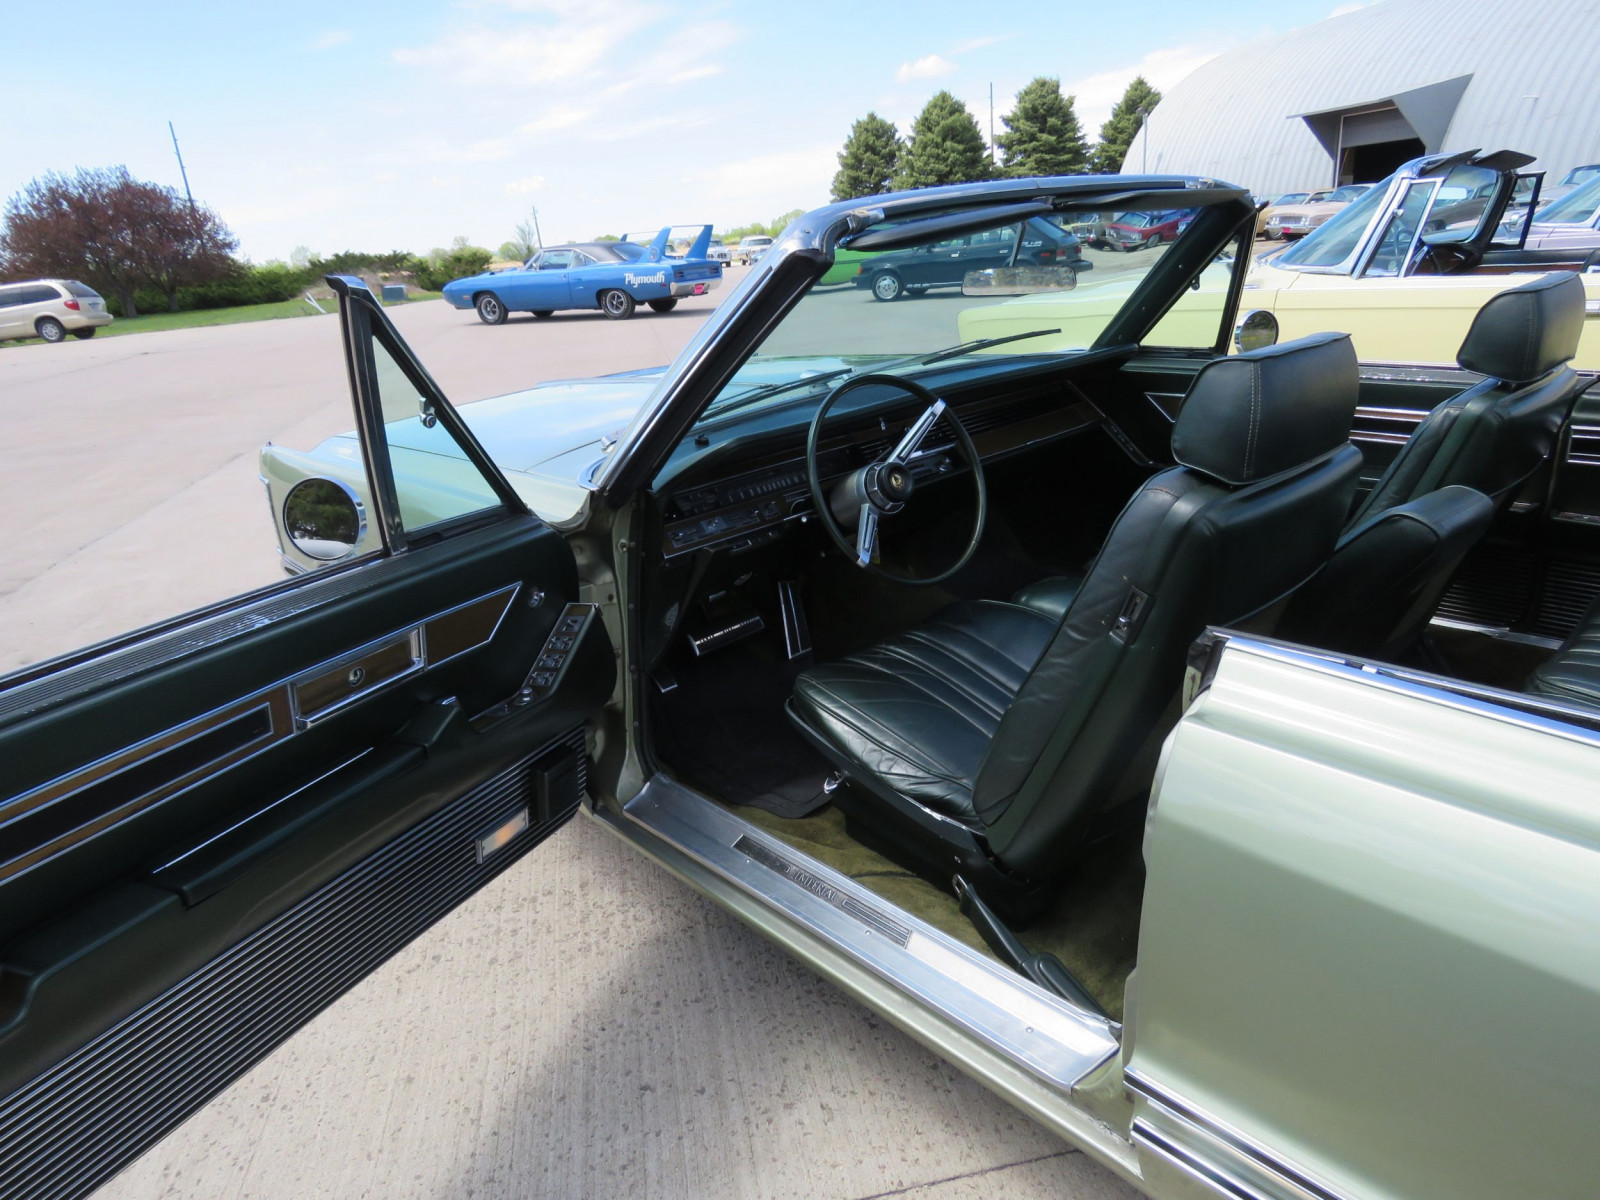 1968 Chrysler Imperial Crown Convertible - Image 16